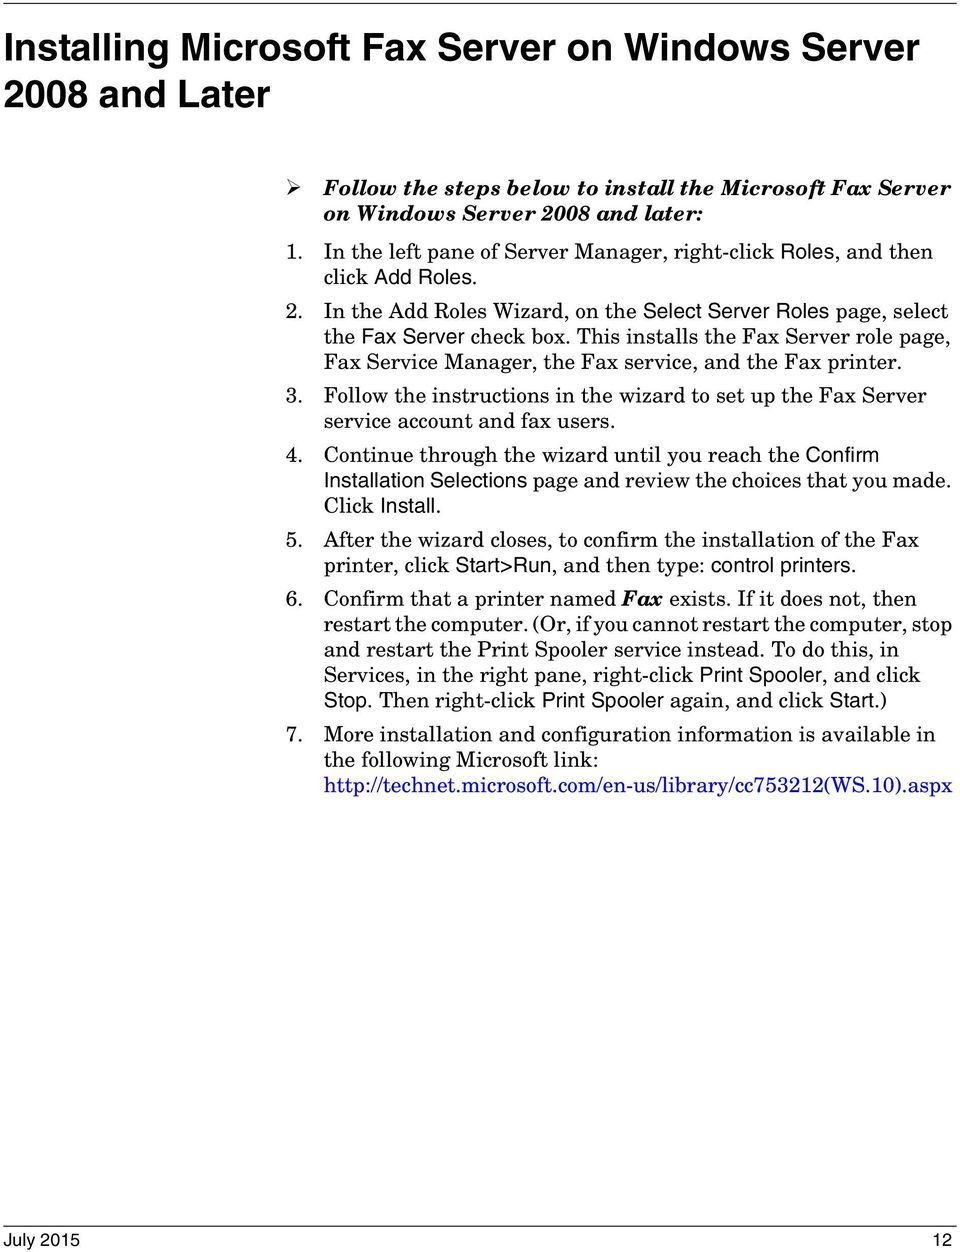 This installs the Fax Server role page, Fax Service Manager, the Fax service, and the Fax printer. 3. Follow the instructions in the wizard to set up the Fax Server service account and fax users. 4.